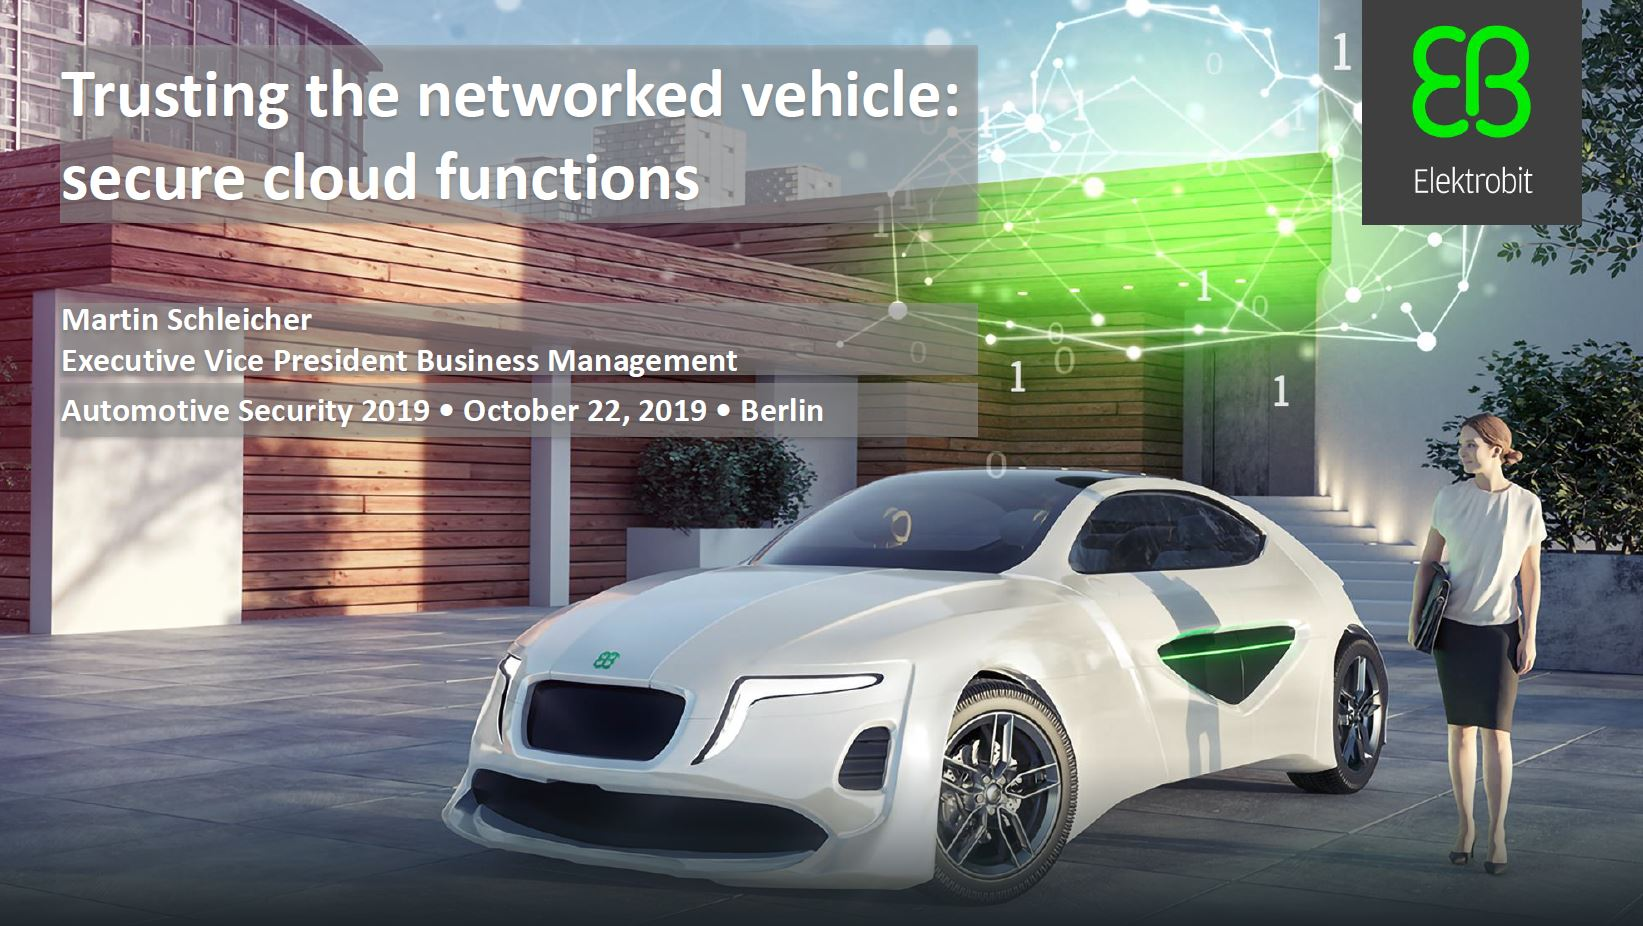 Trusting-the-networked-vehicle